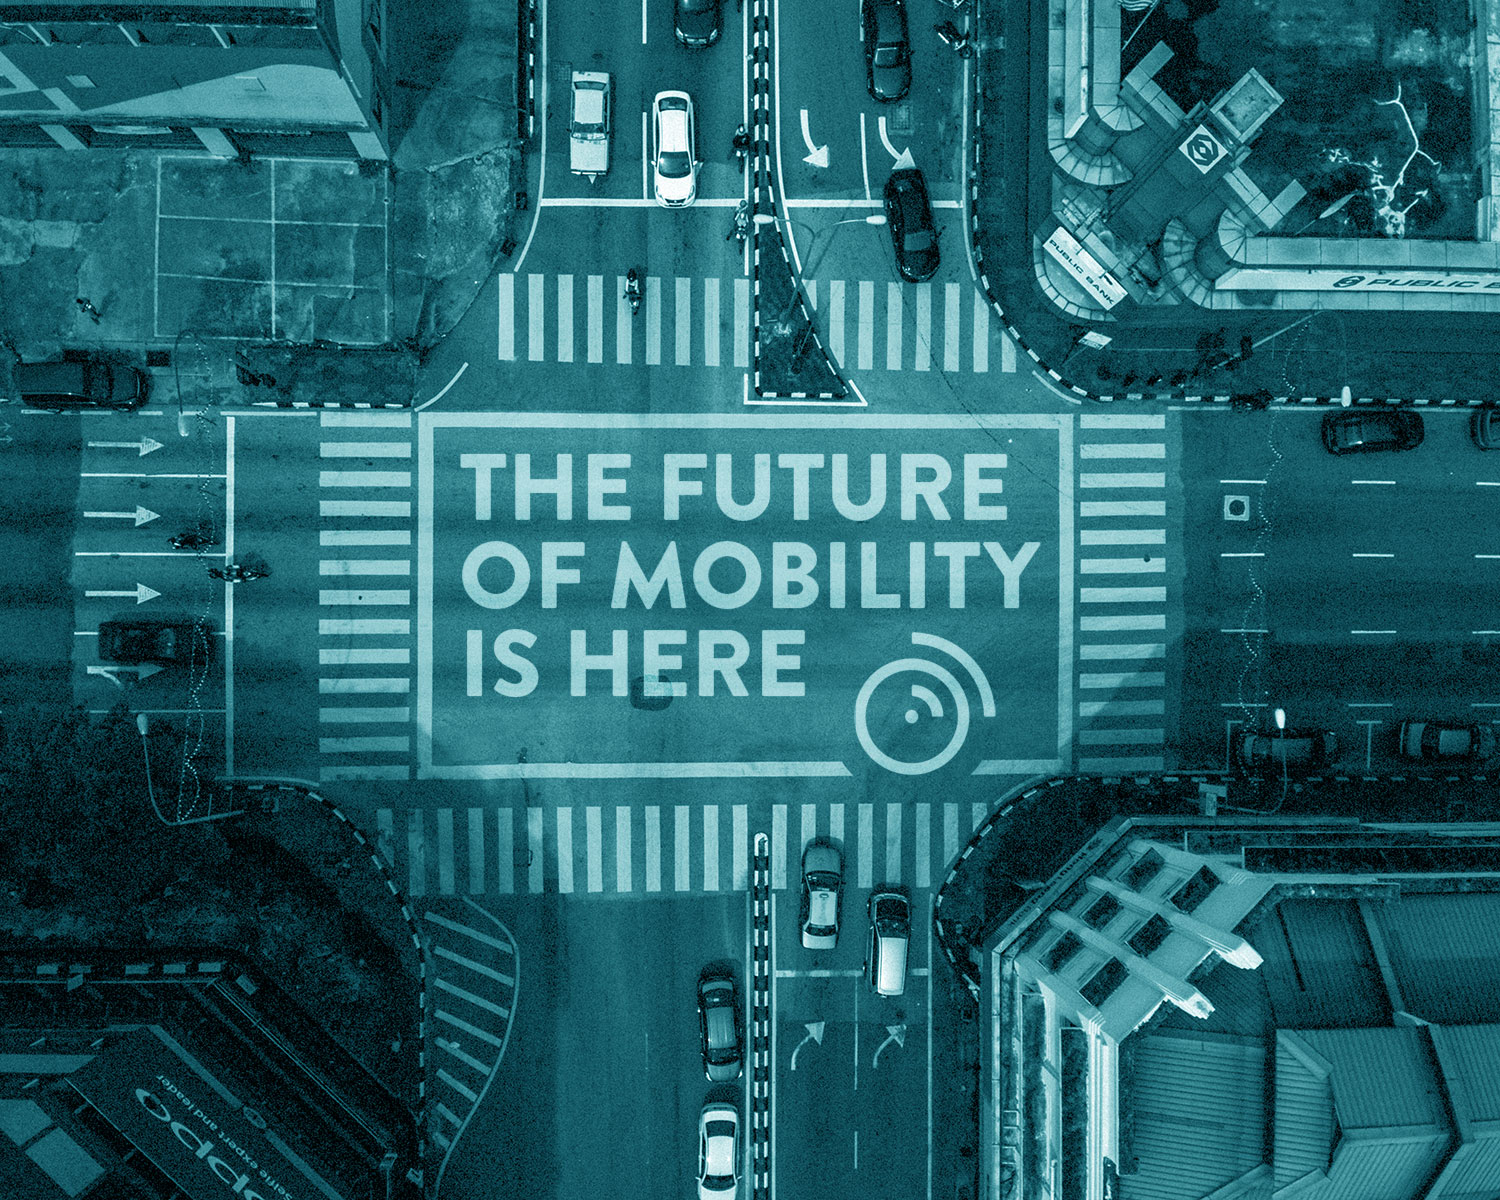 future-of-mobility-sml.jpg